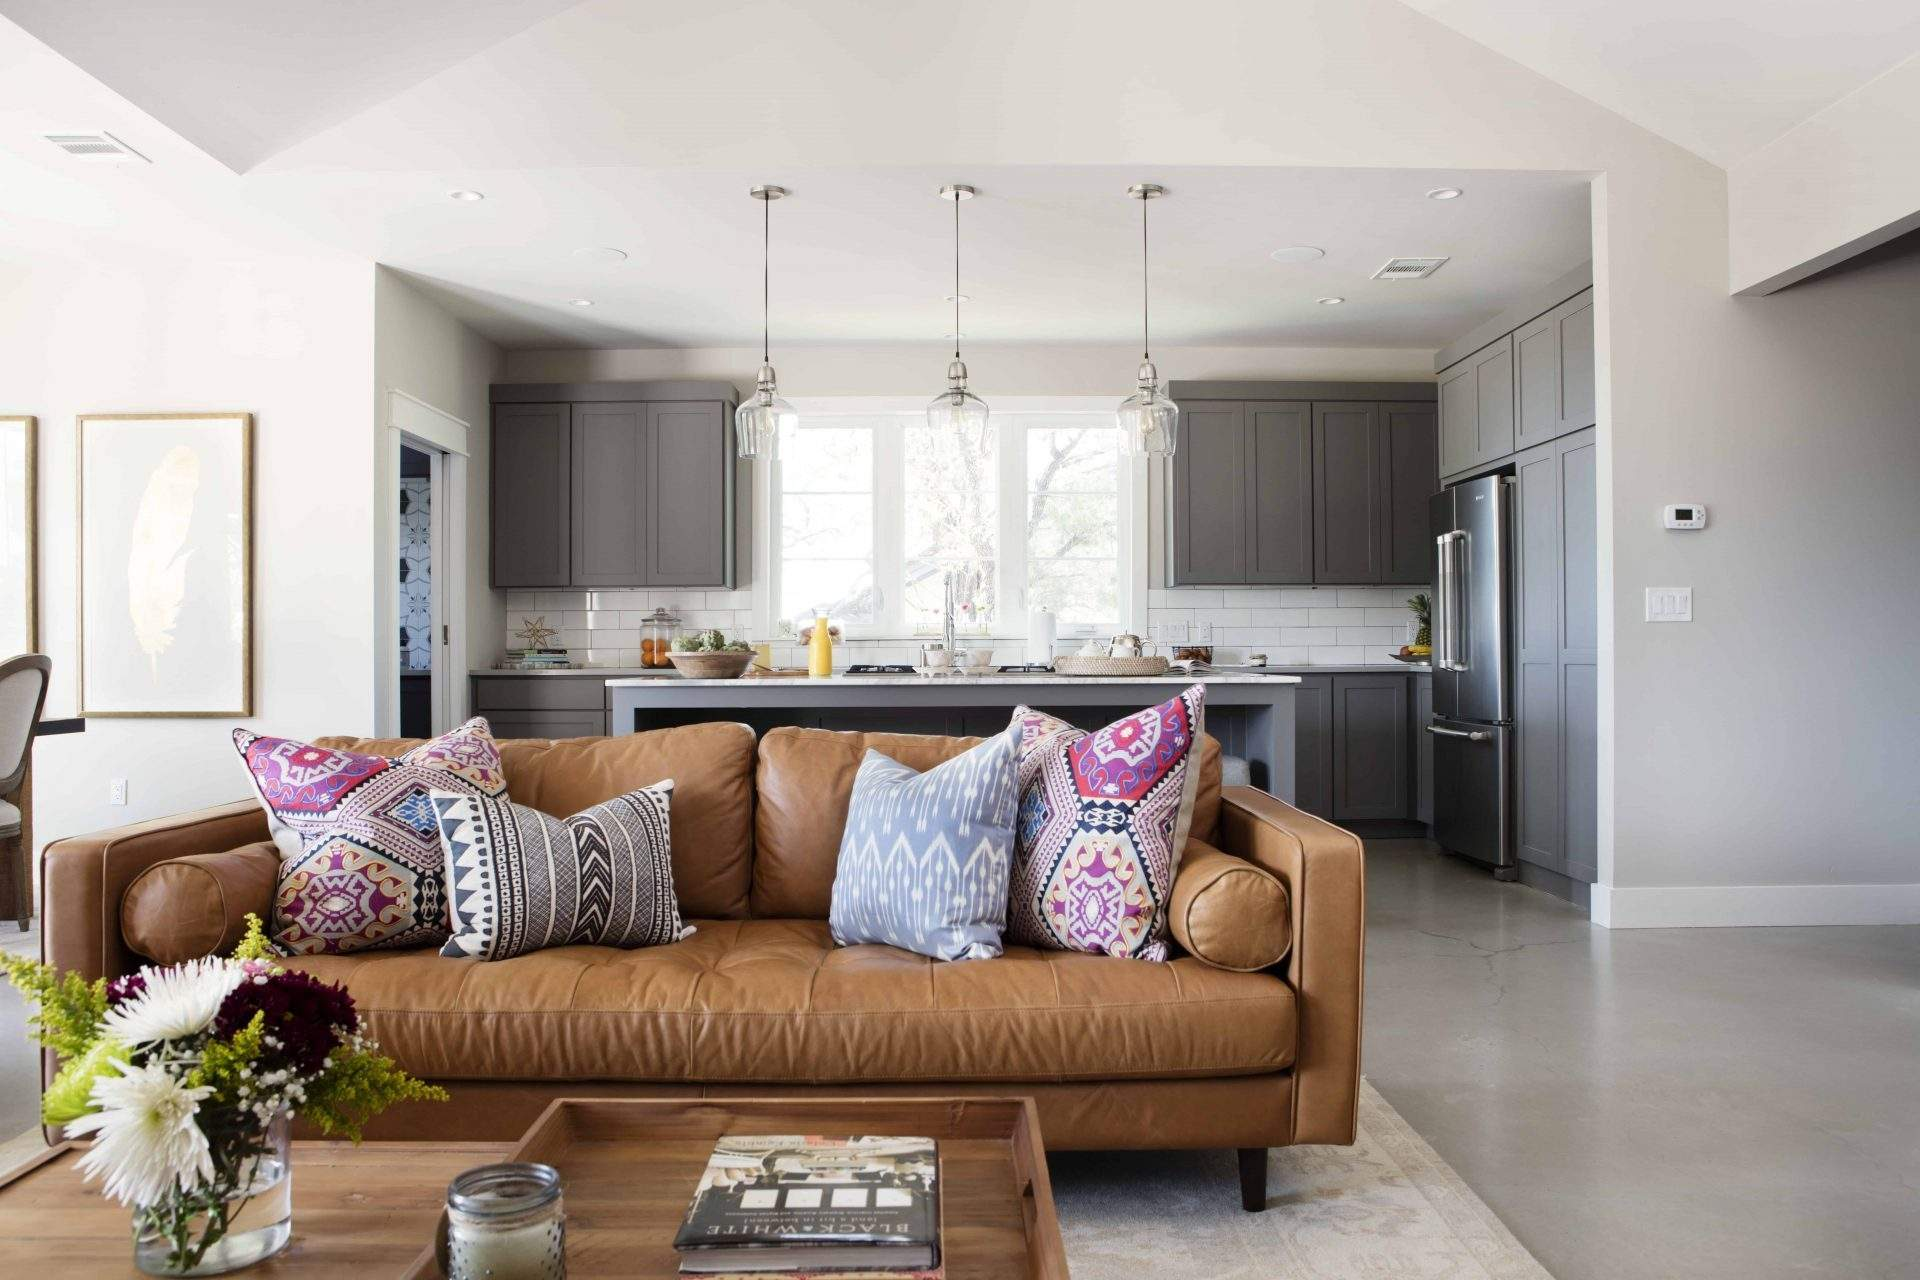 Interior Design, Tan Leather Couch with Bohemian Pillows, Etch Interior Design, Austin, Texas